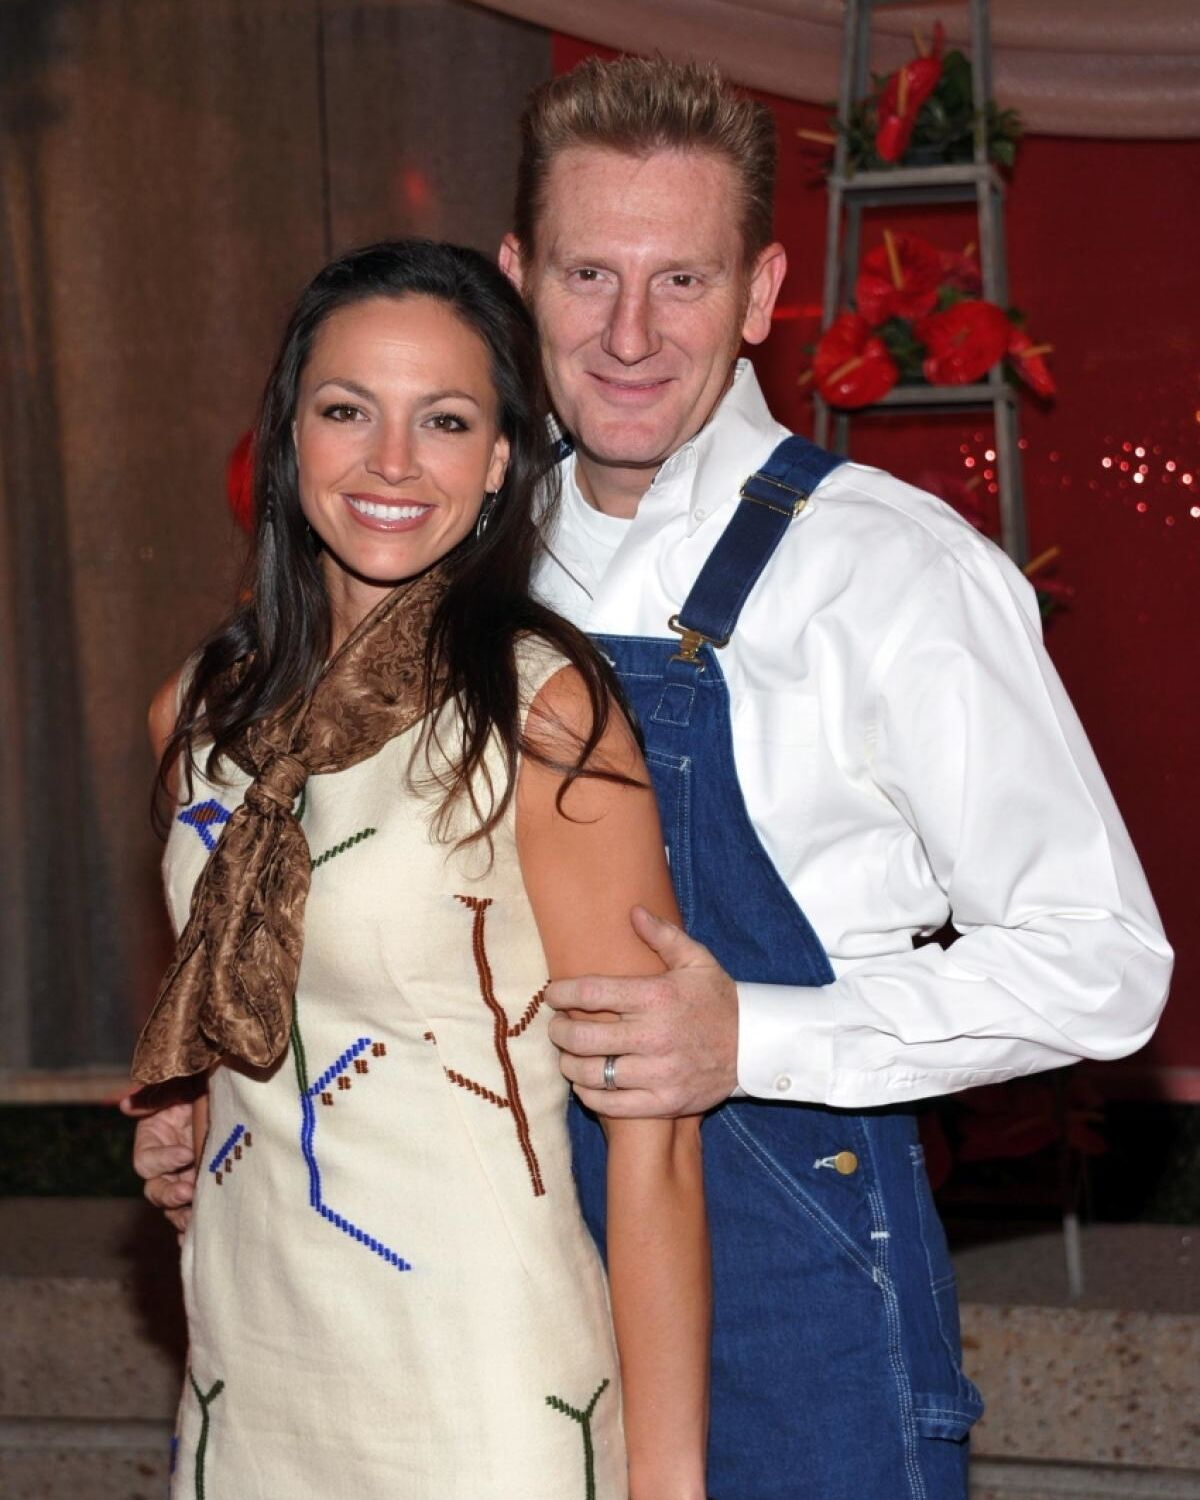 JOEY & RORY Feek 8 x 10 / 8x10 GLOSSY Photo Picture IMAGE #2 - $3.99 ...